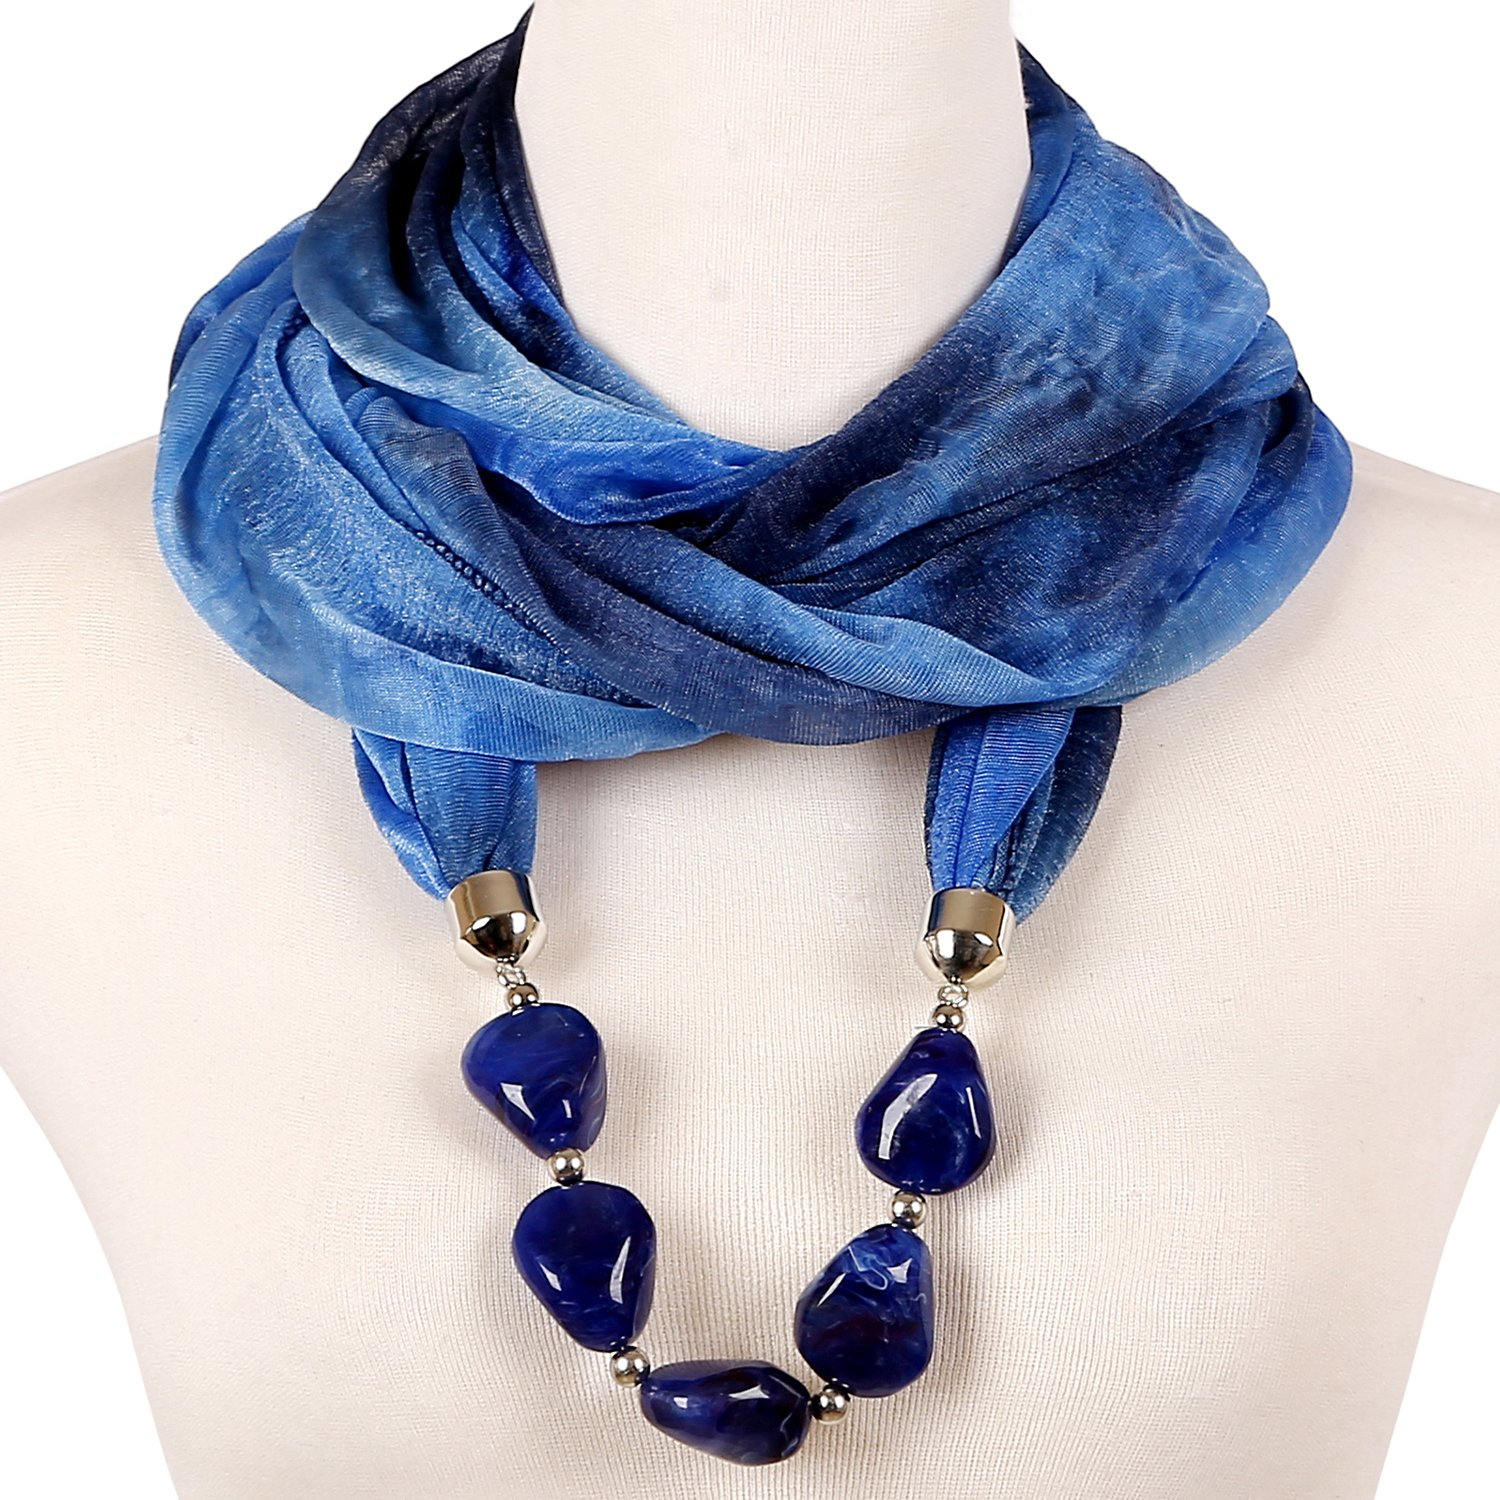 LERDU Gift Idea Infinity Scarf Necklace Jewelry Accessory for Women Capri Blue SC150164-6